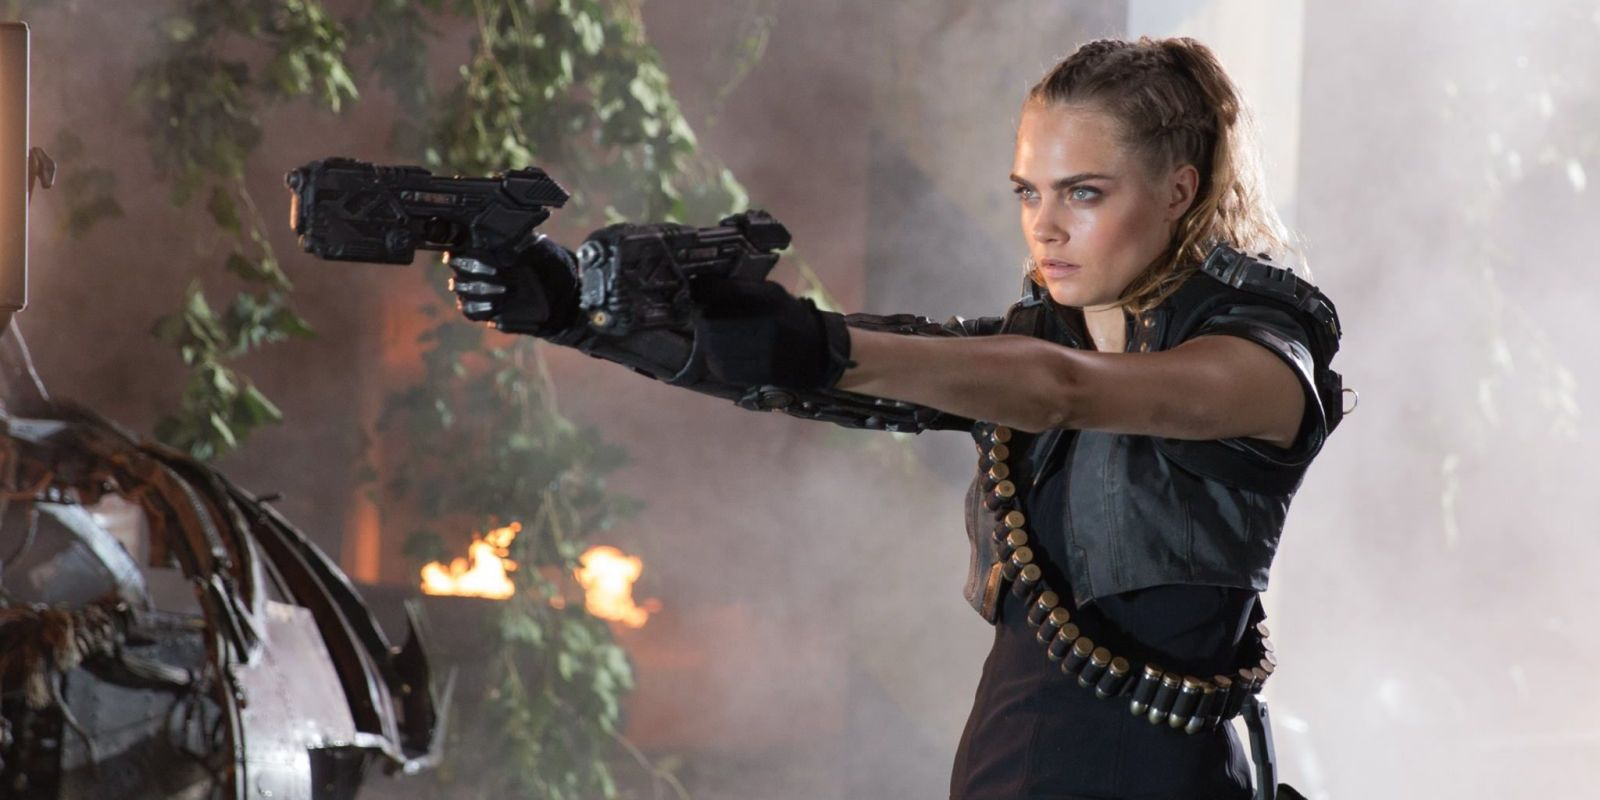 New call of duty commercial - Cara Delevingne In Call Of Duty Black Ops Iii Trailer Michael B Jordan Marshawn Lynch In Video Game Ad